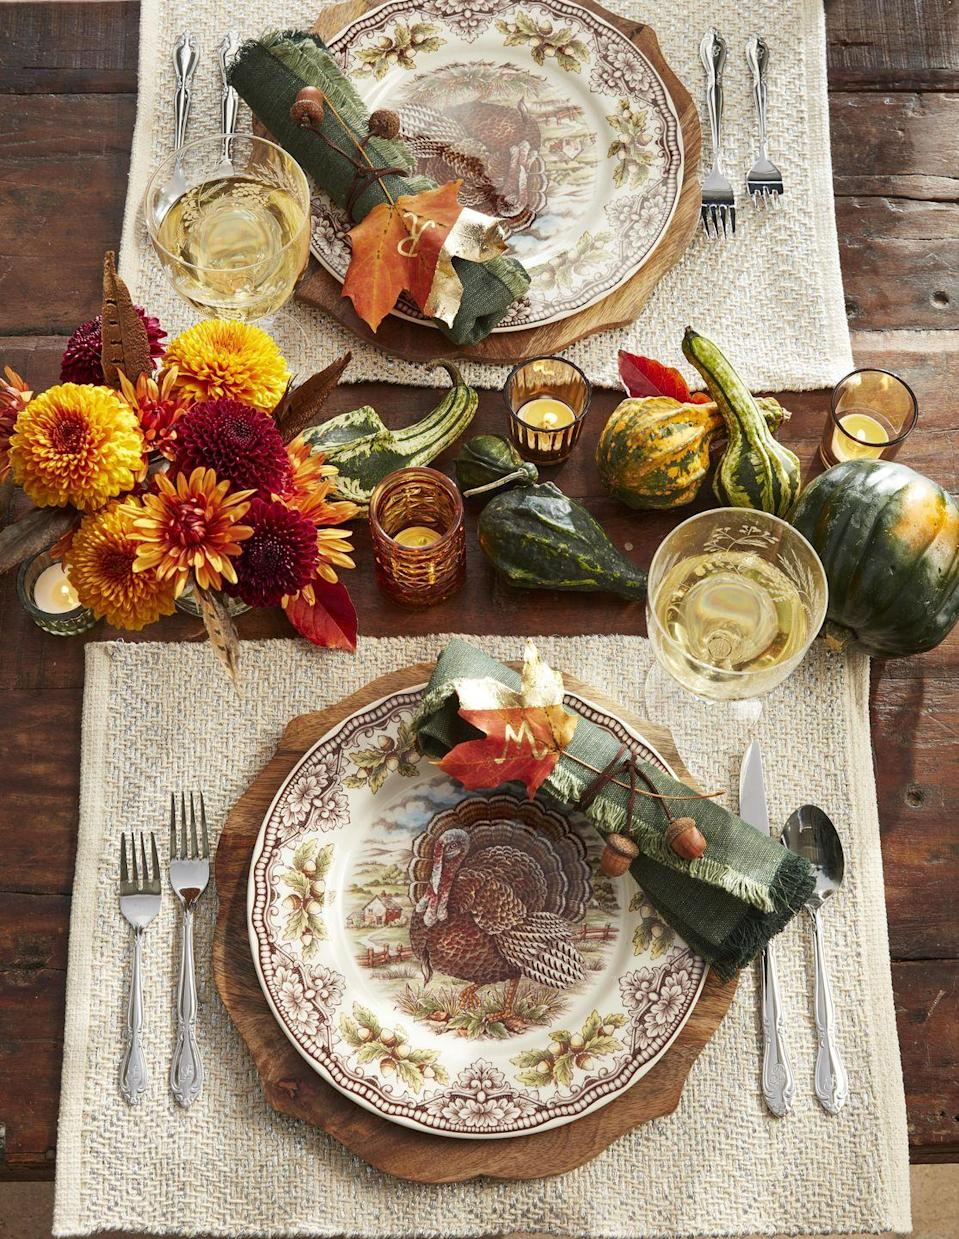 <p>A scattering of green gourds and acorn squash laid down the center of the table and accented with orange and red flowers creates quite a pretty site. <br></p>